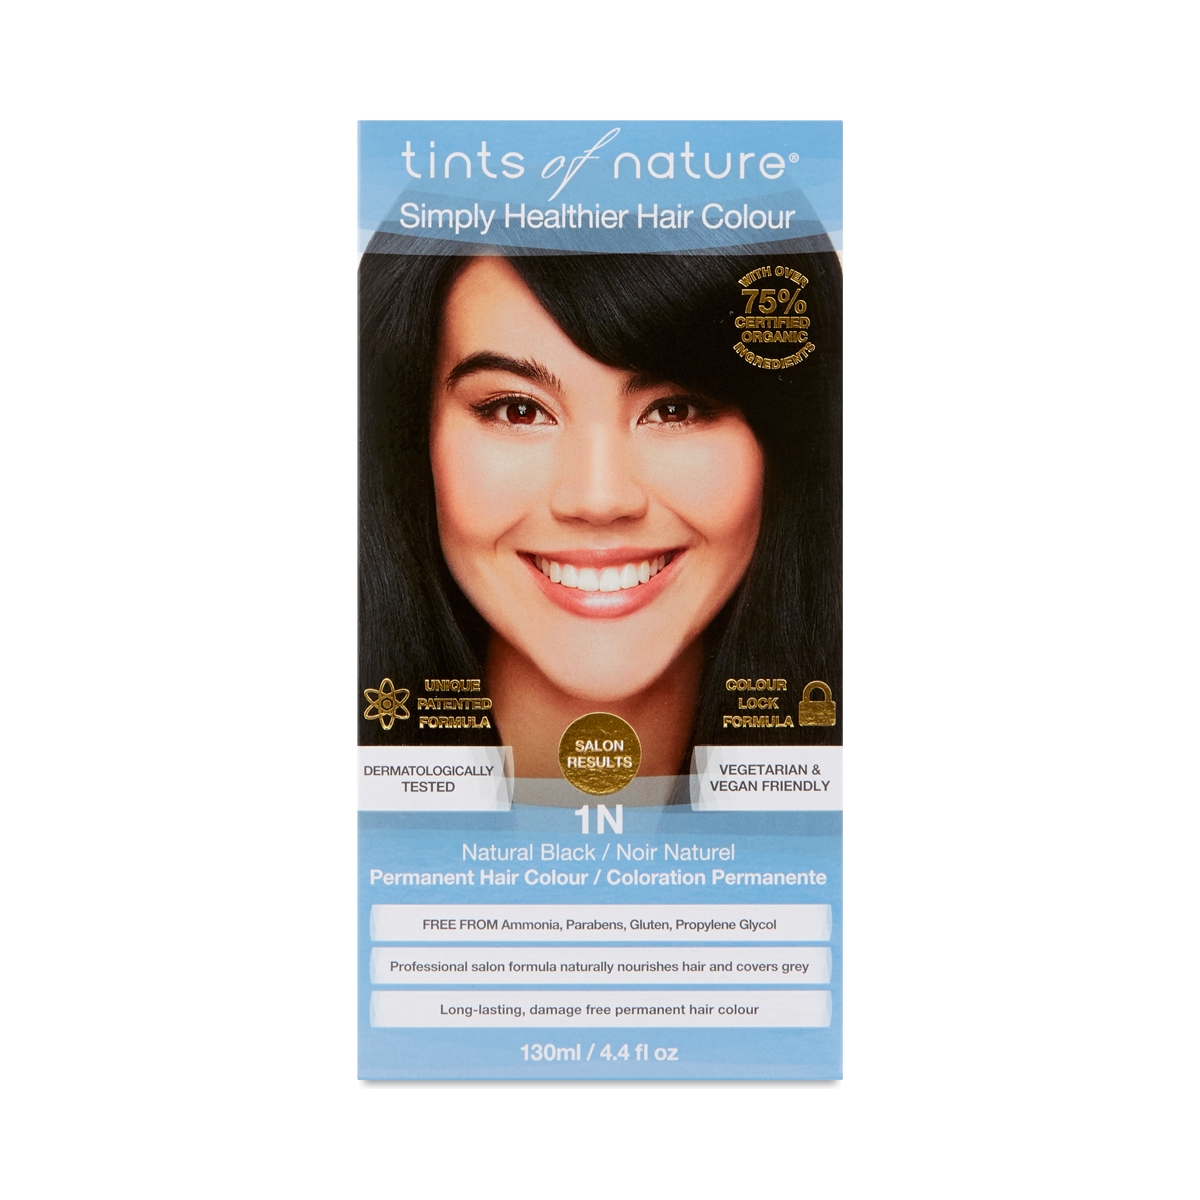 Tints of Nature Permanent Hair Color, Natural Black 1N 1 each